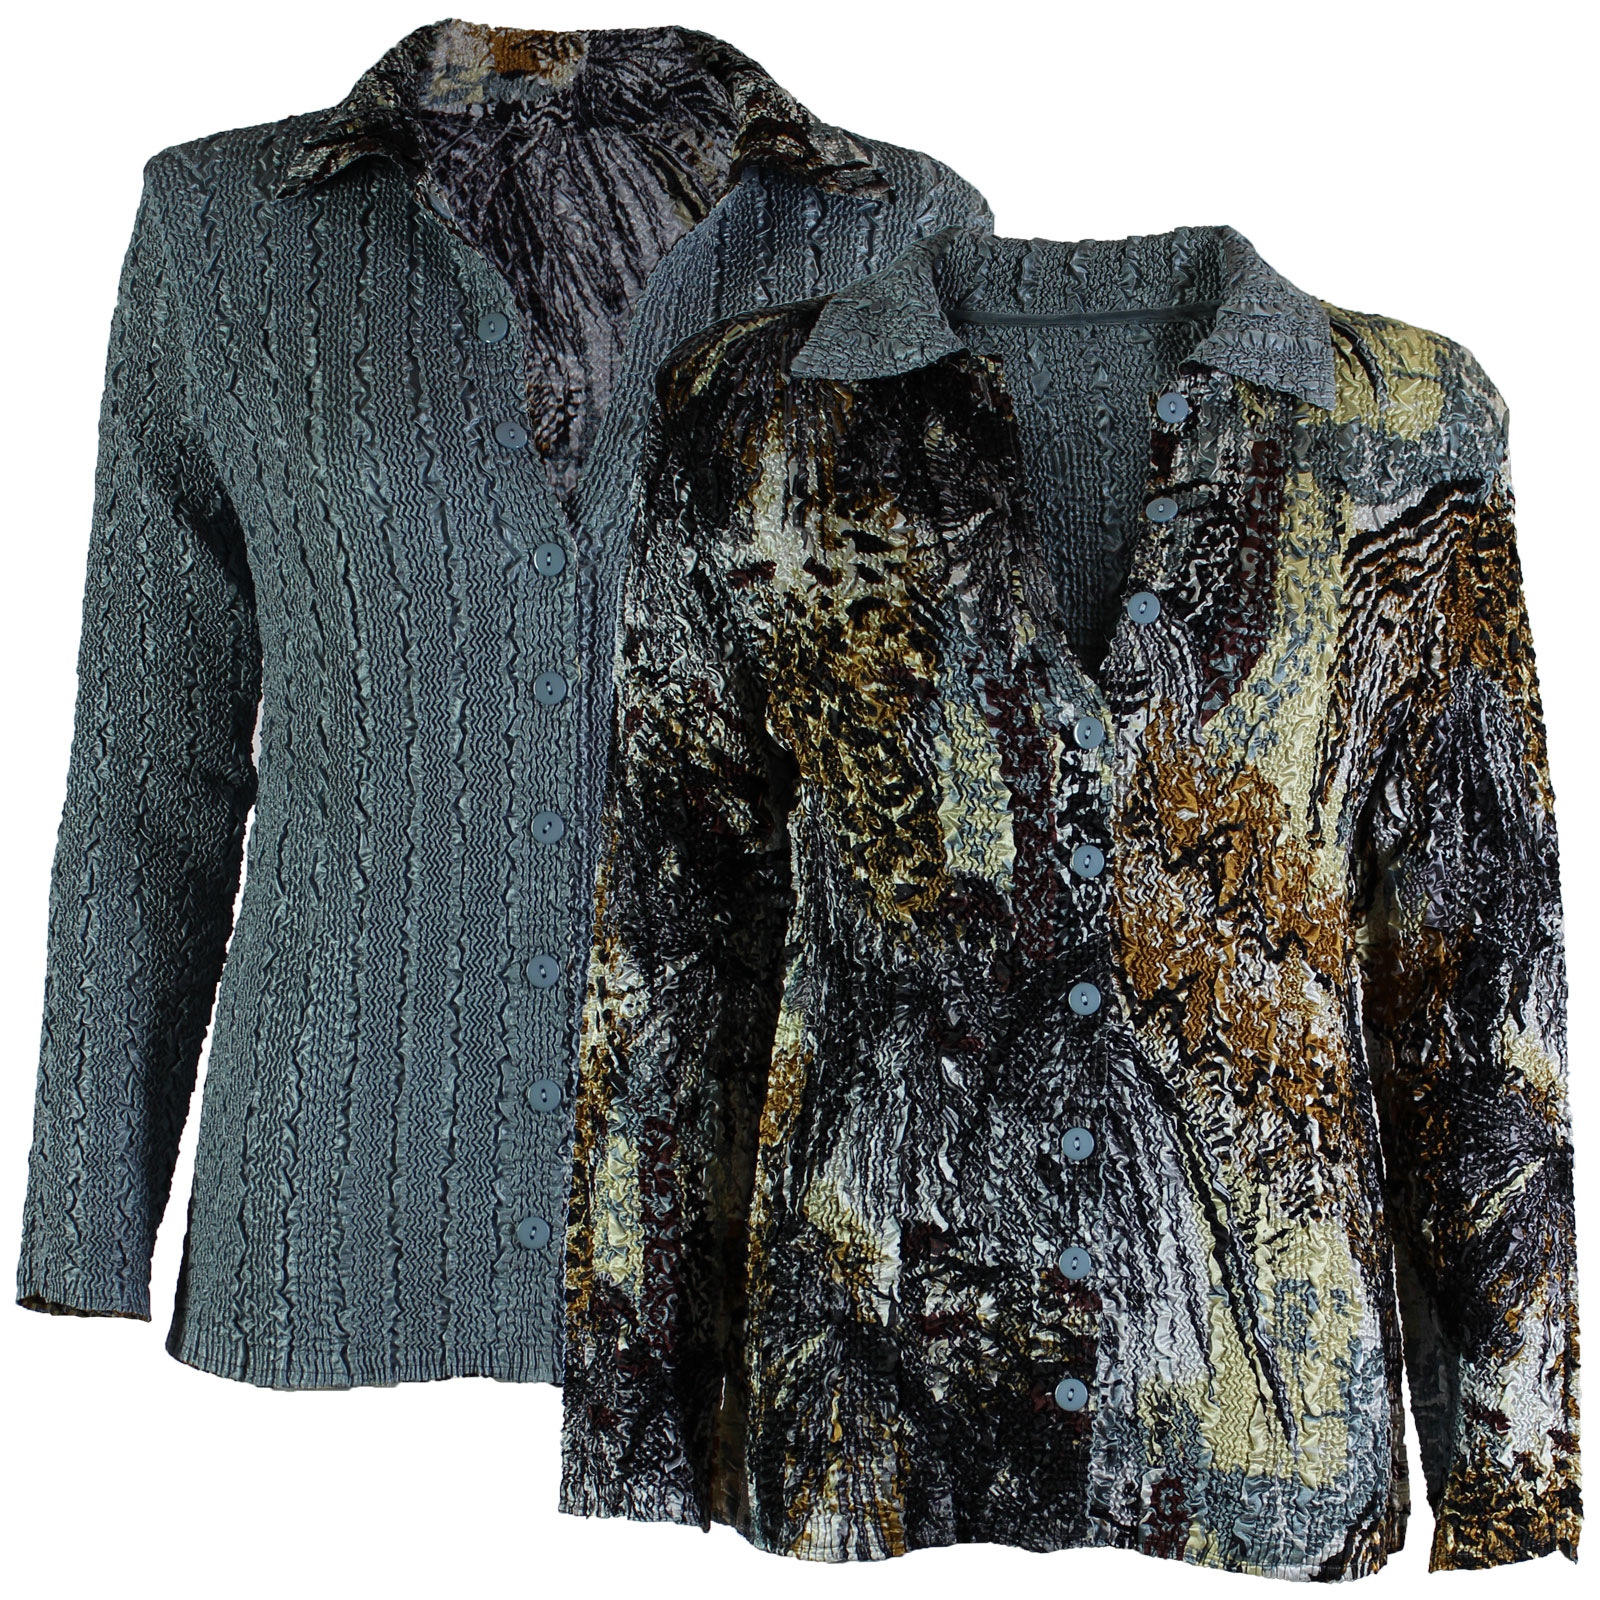 Wholesale Magic Crush - Reversible Jackets Abstract Black-Gold reverses to Solid Silver #1032 - L-XL